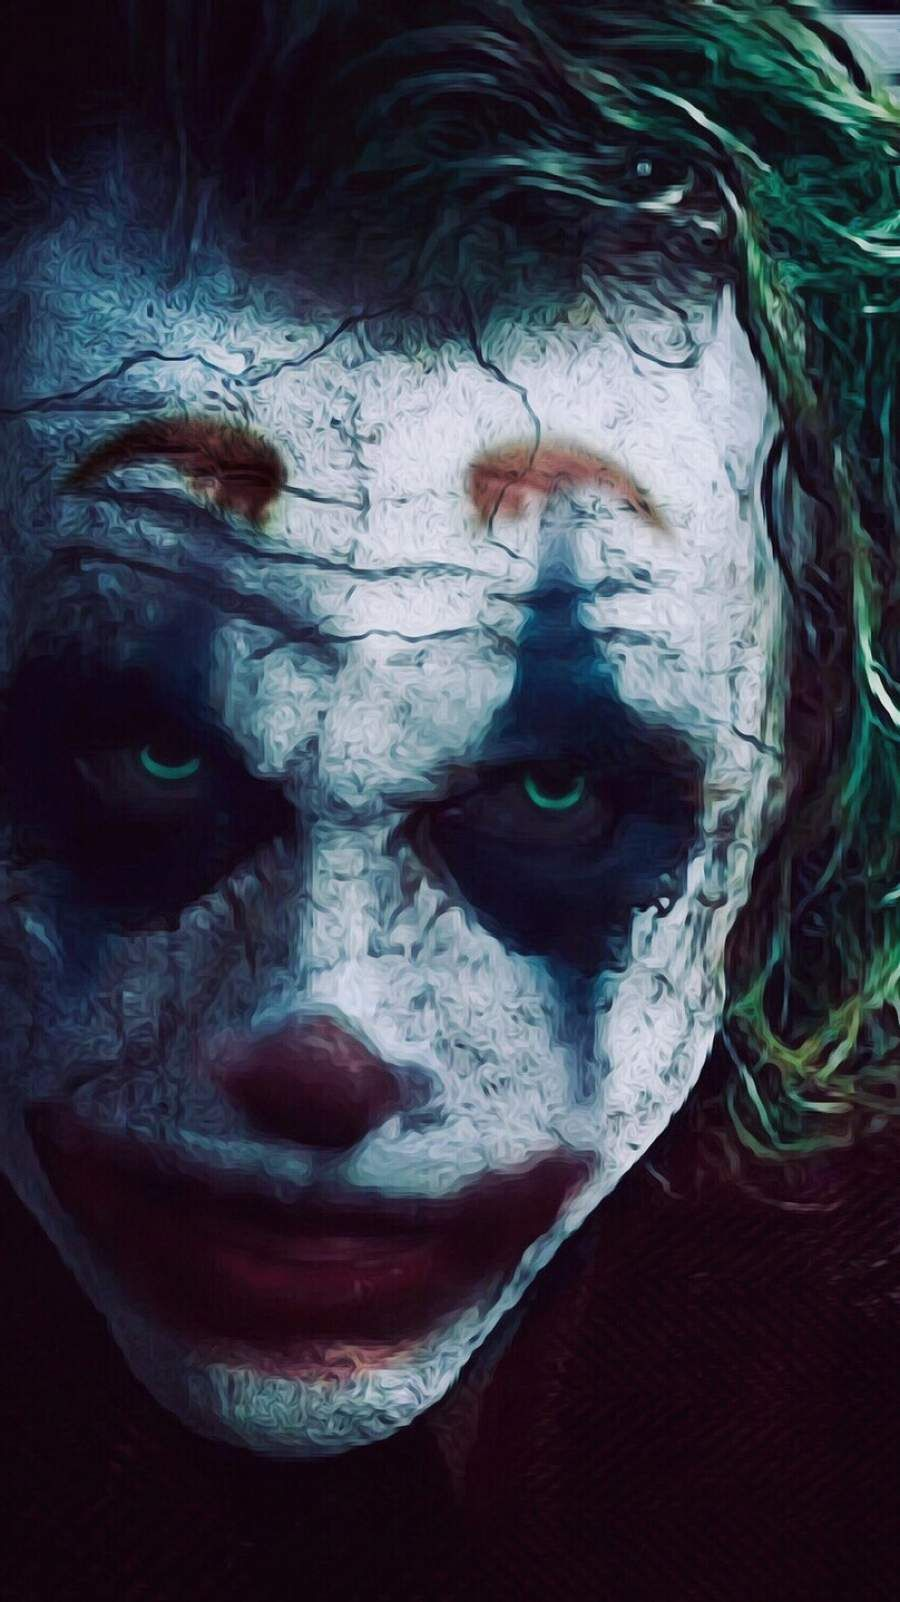 Joker Arthur Iphone Wallpaper Joker Iphone Wallpaper Joker